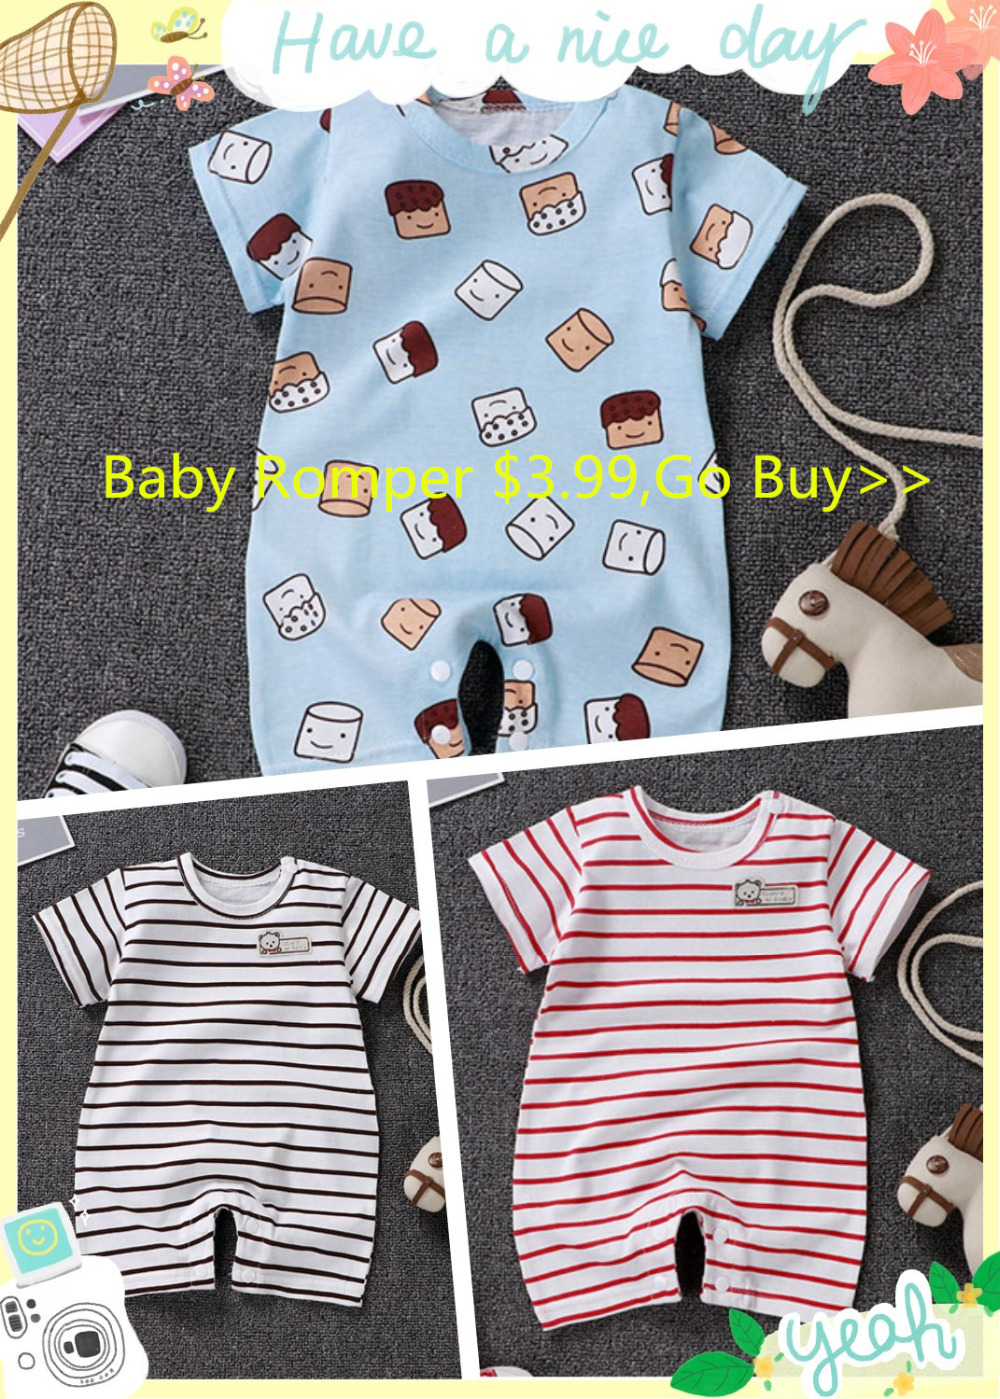 HTB1s.3fNhYaK1RjSZFnq6y80pXaD baby clothing 100% cotton unisex rompers baby boy girls short sleeve summer cartoon toddler cute Clothes